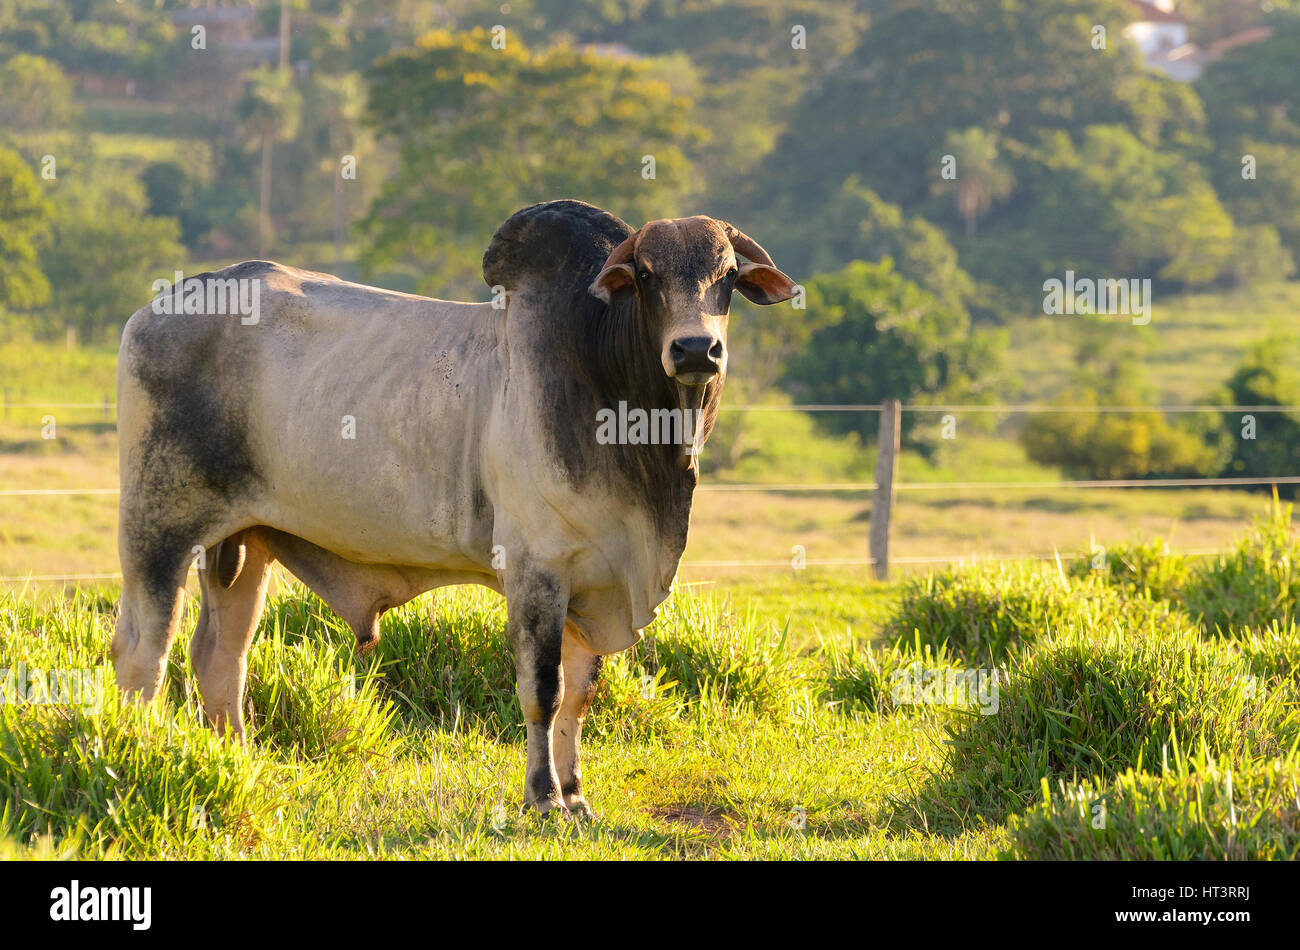 Breeding bull in farm pasture. Fence and field in the background. - Stock Image